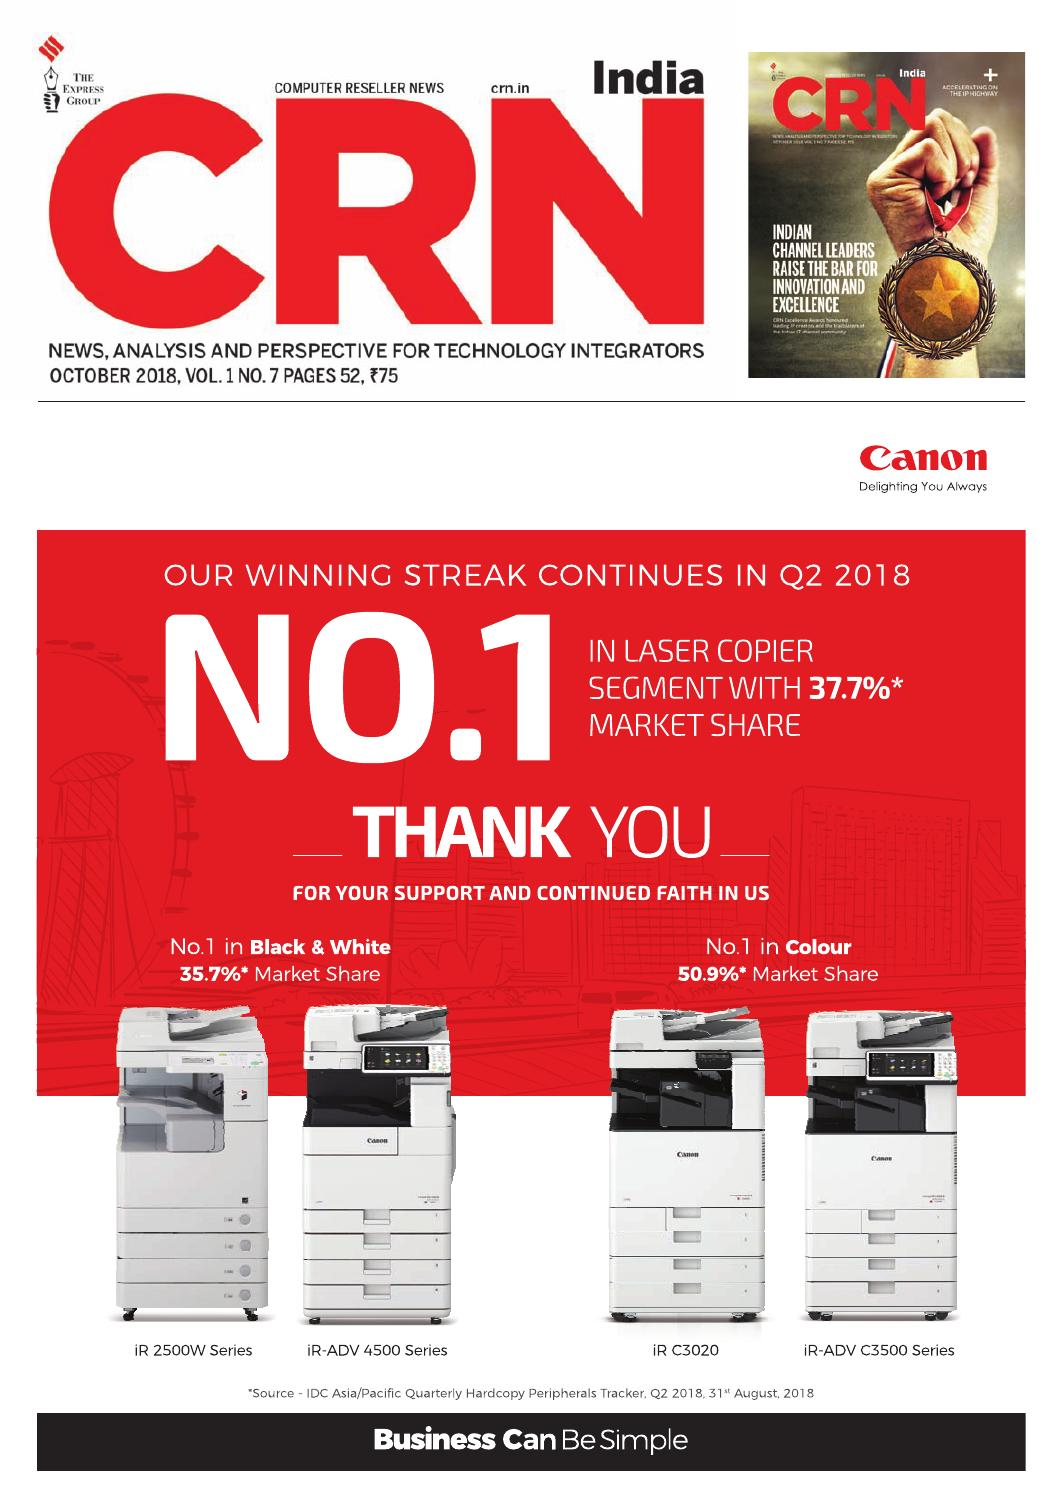 CRN India (Vol 1, No 7) October, 2018 by Indian Express - issuu